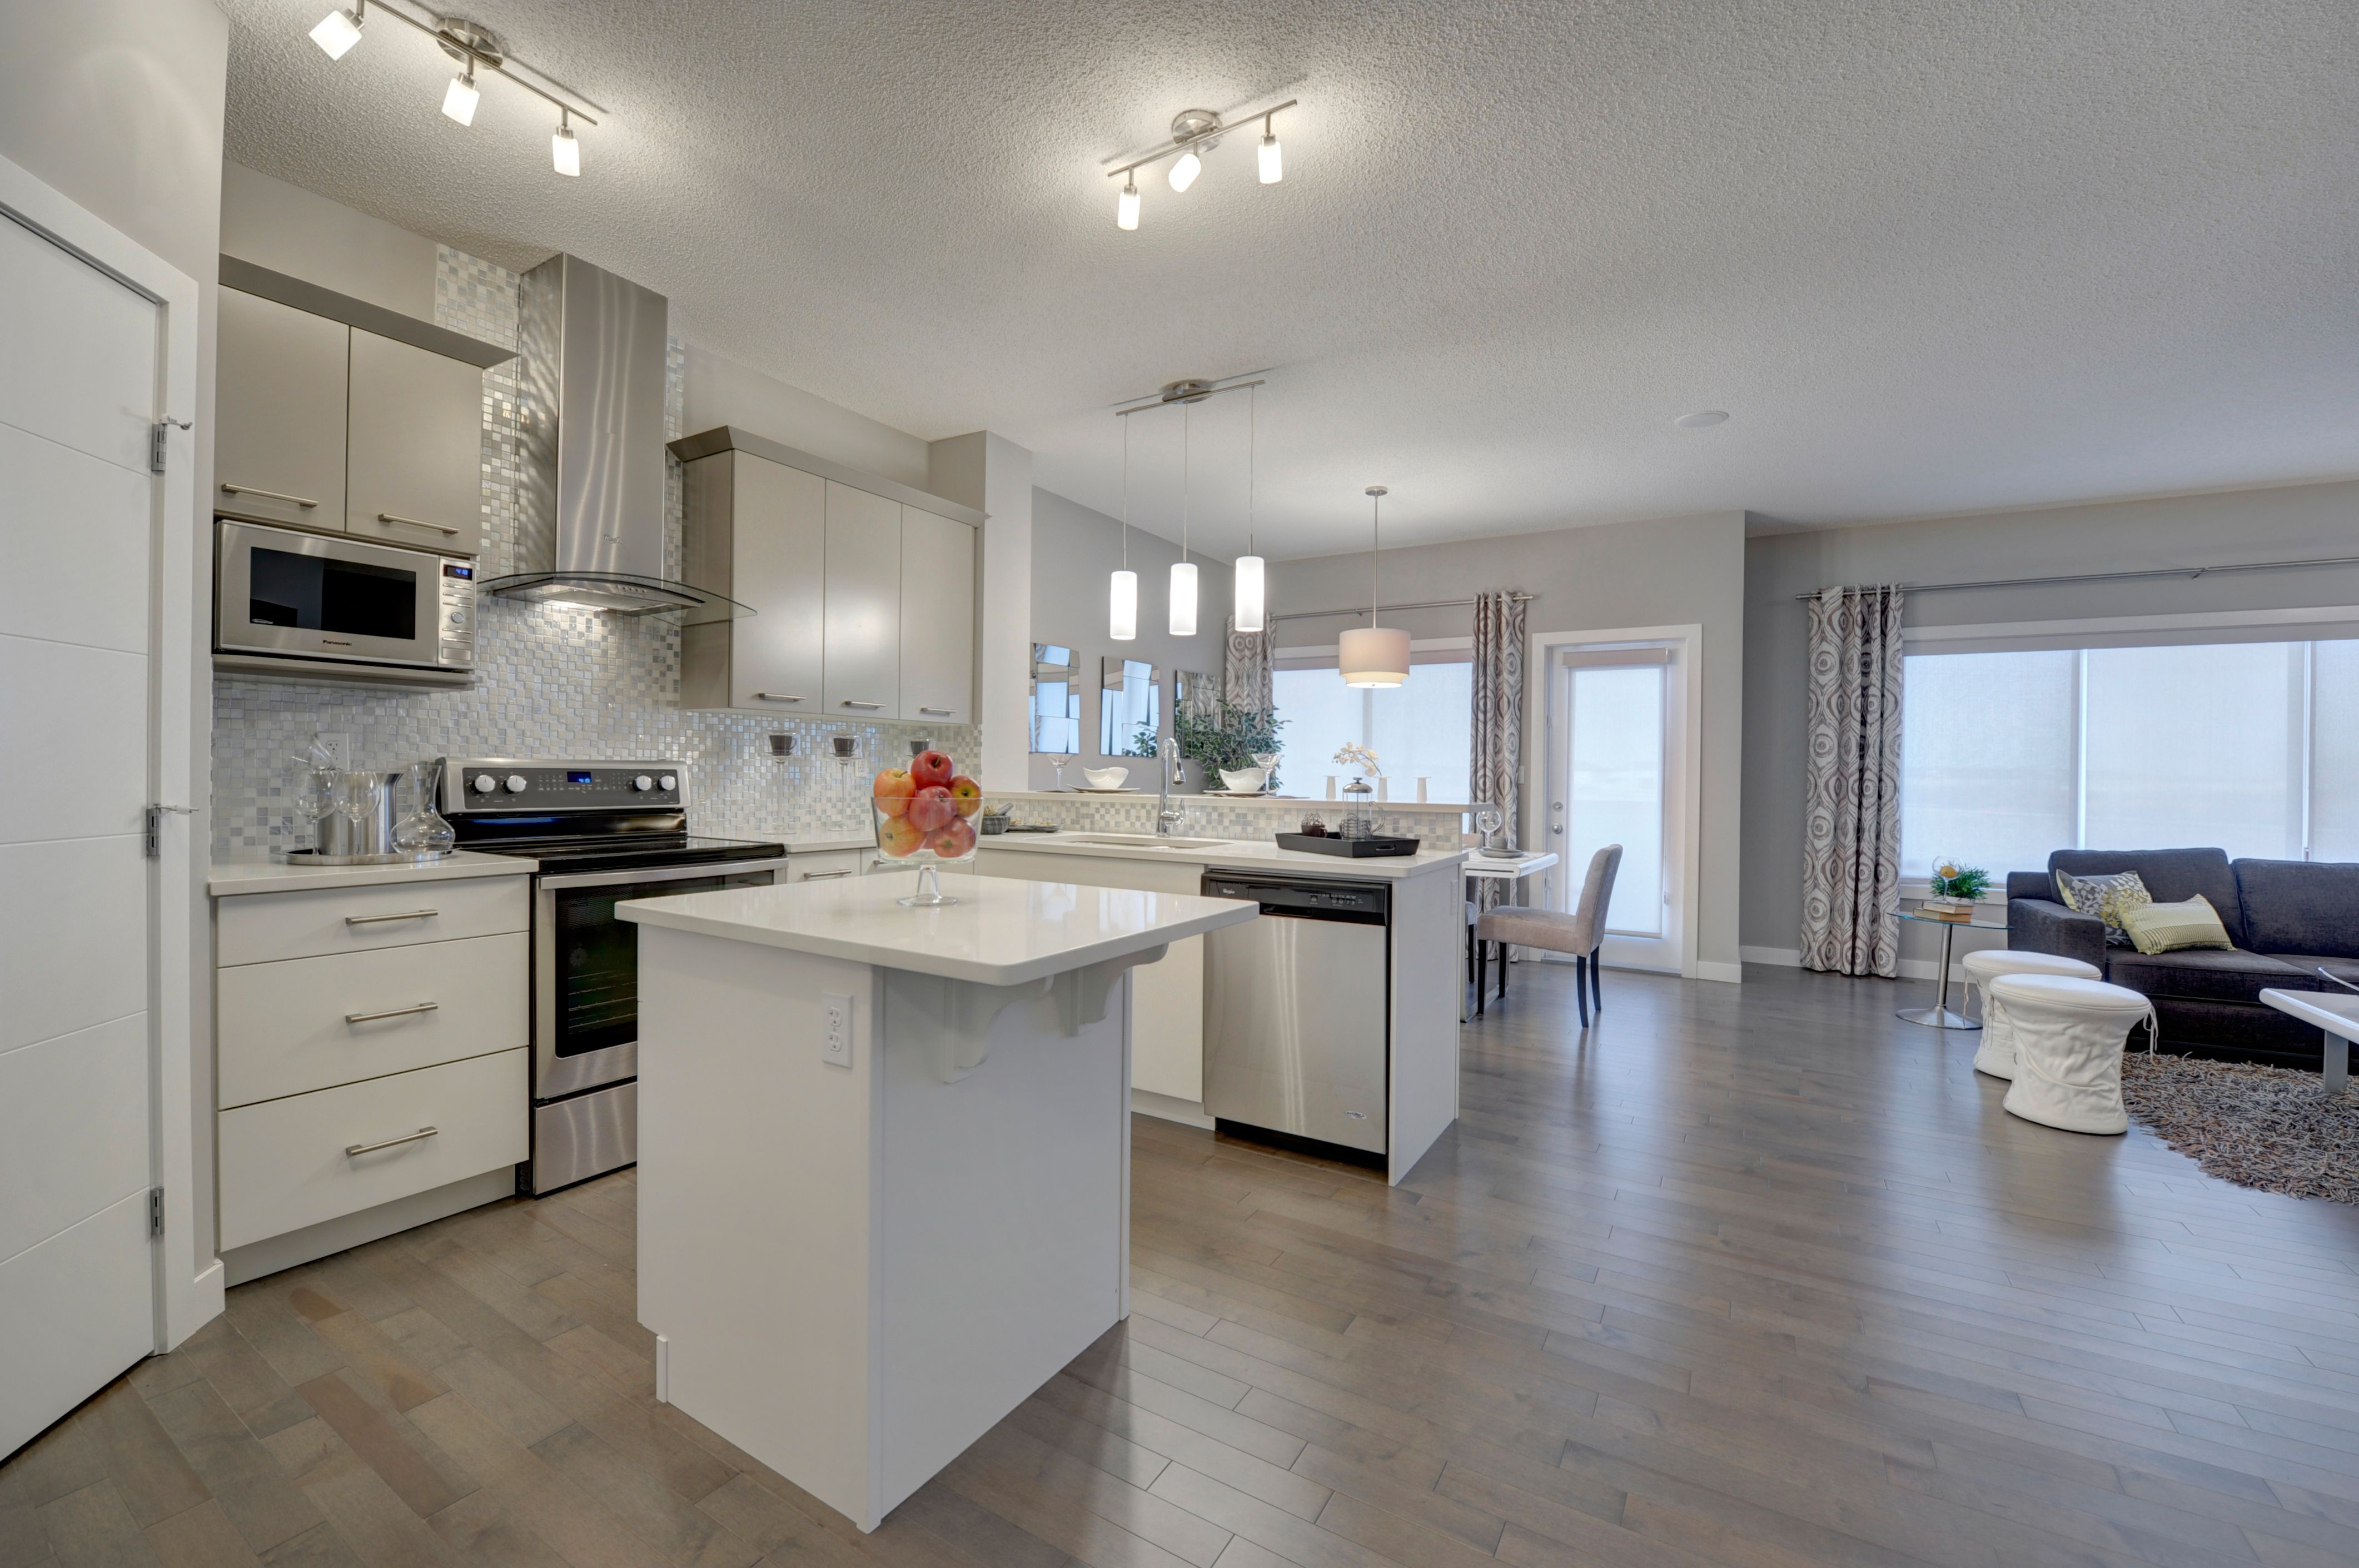 Openconcept main floor living at it's finest. The kitchen